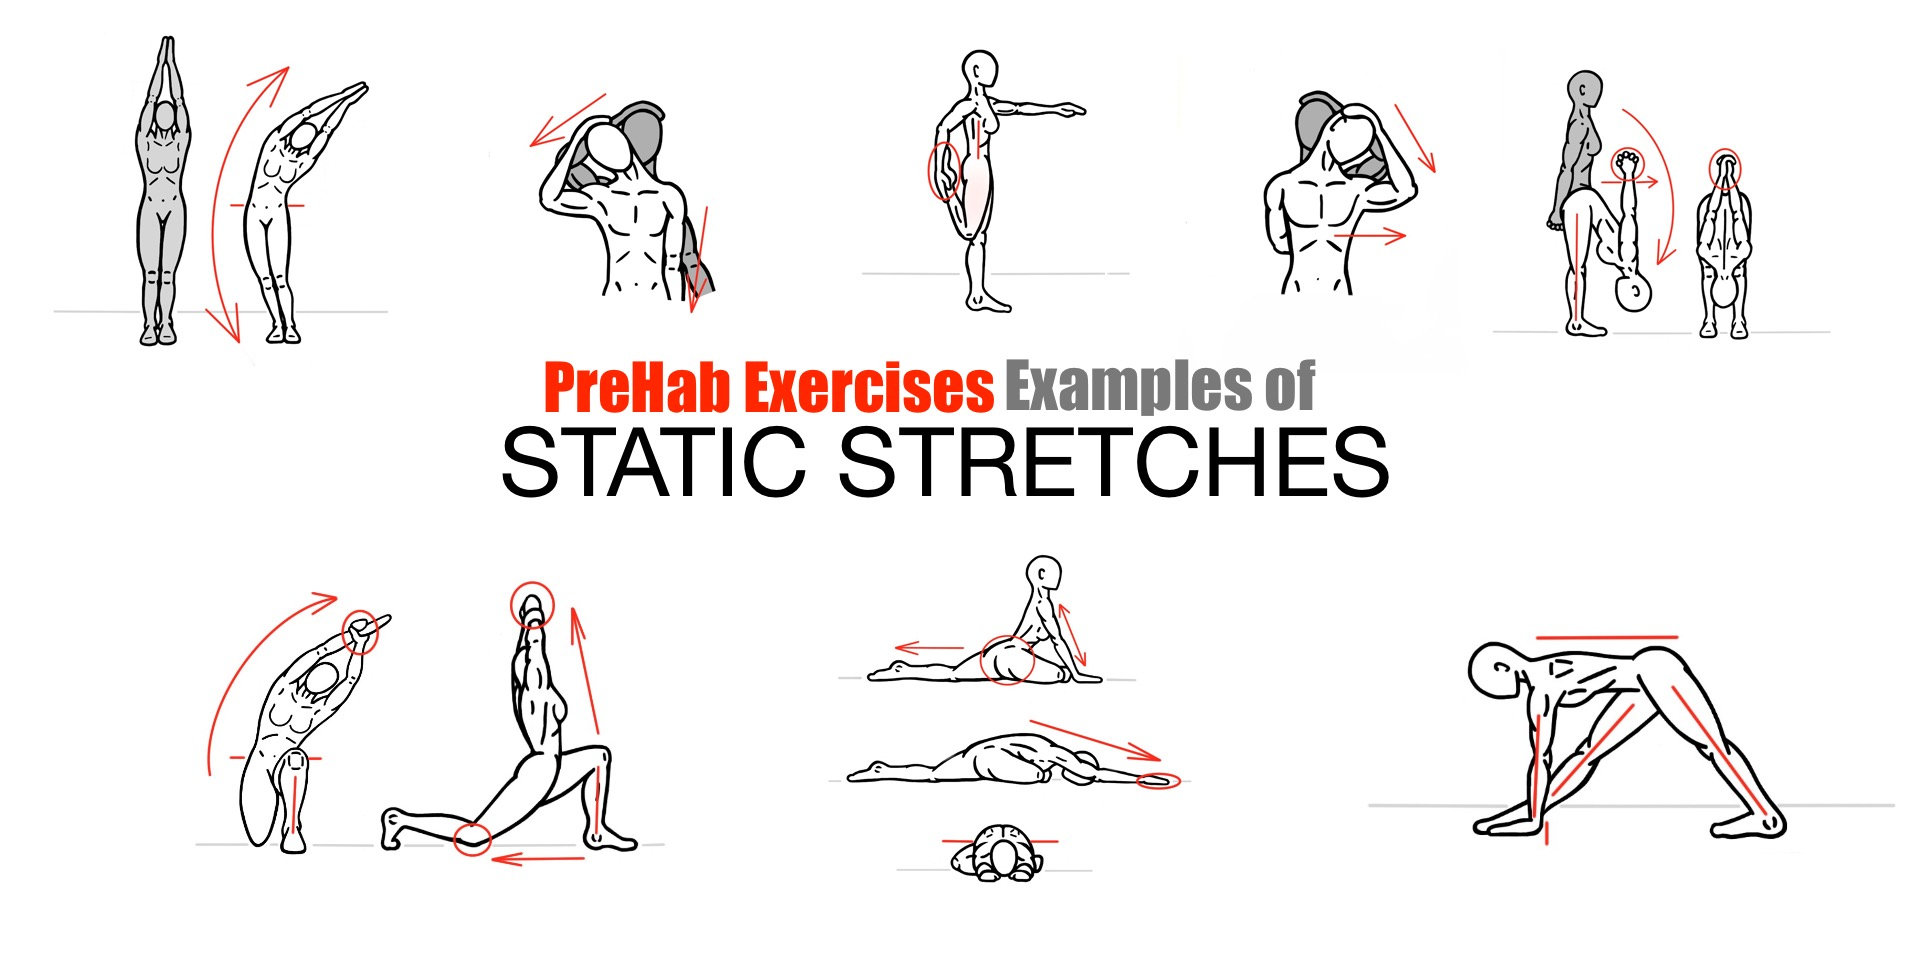 PreHab Exercises - Examples of Static Stretching - Static Stretches for Improved Mobility